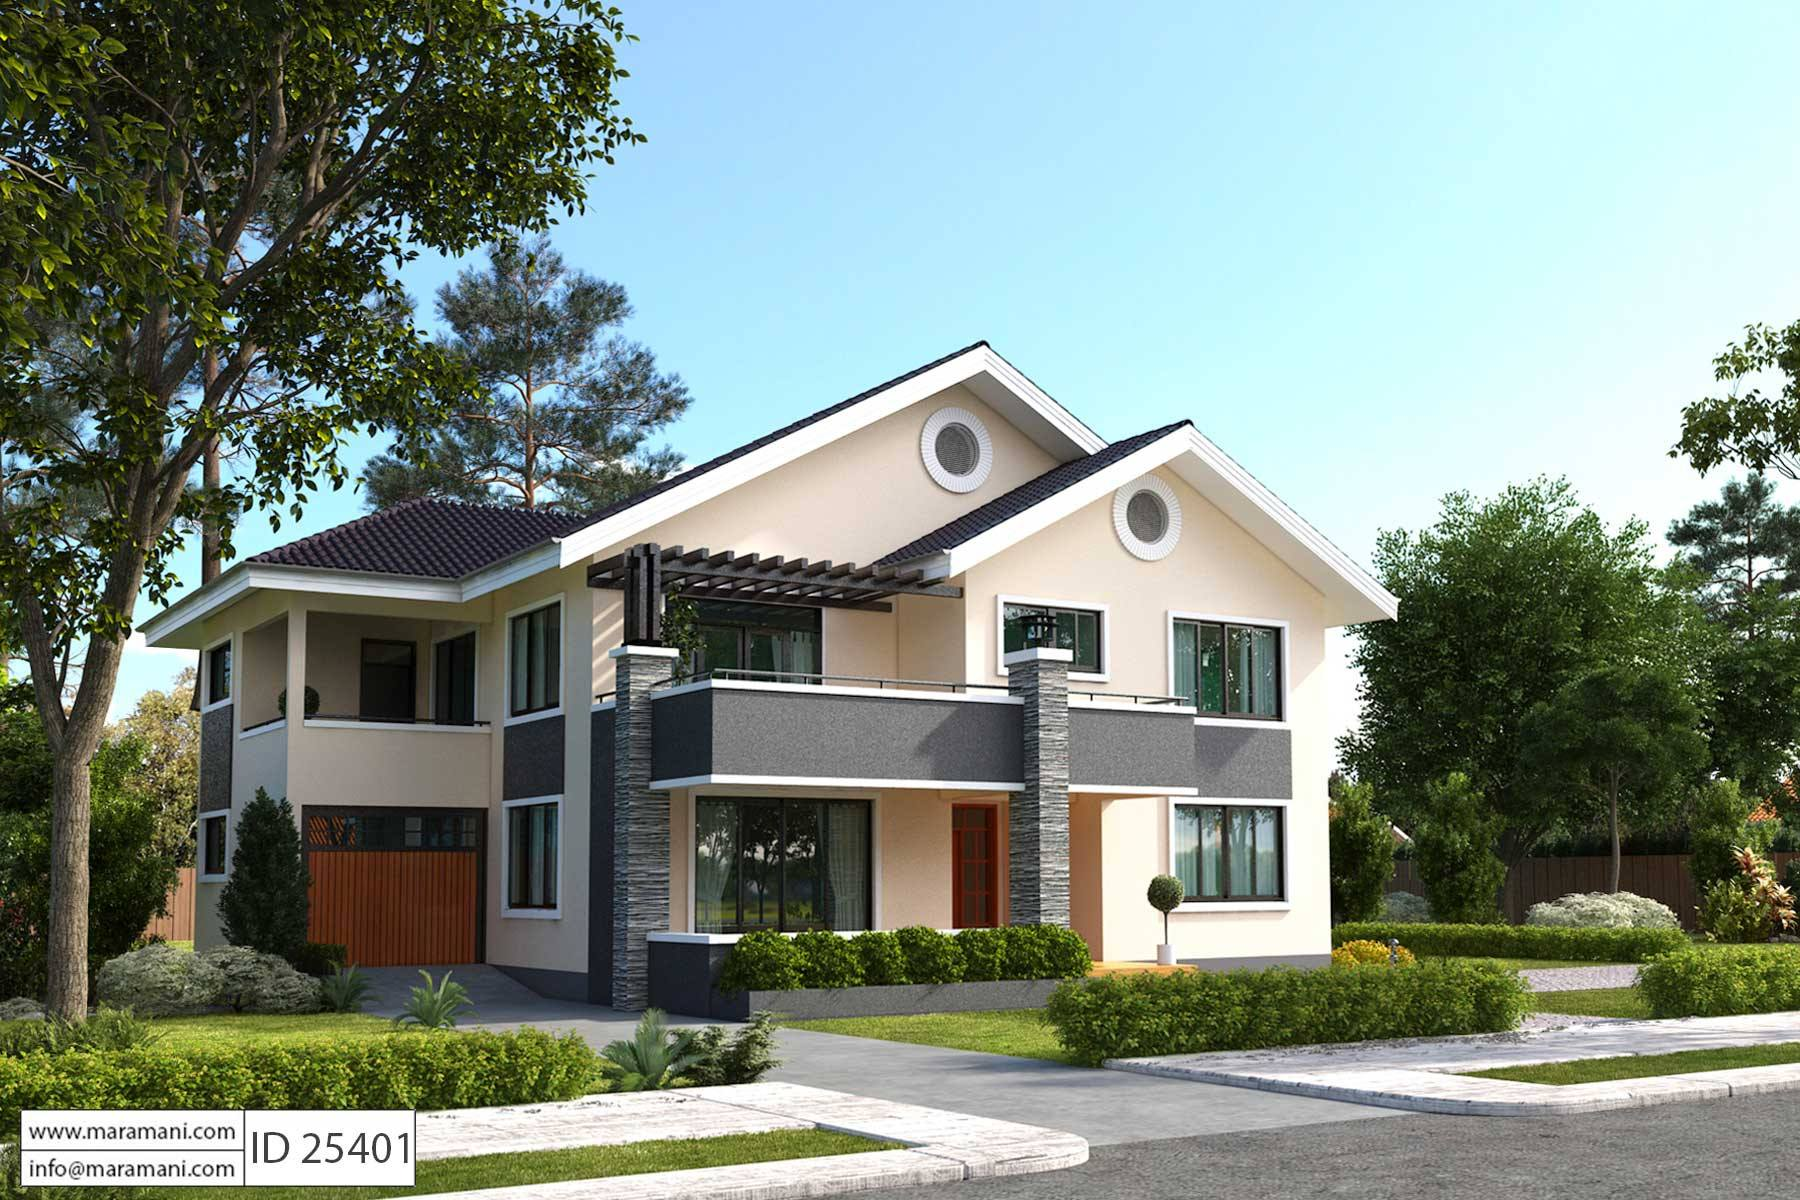 5 bedroom house plan id 25401 floor plans by maramani for Four bedroom maisonette plans